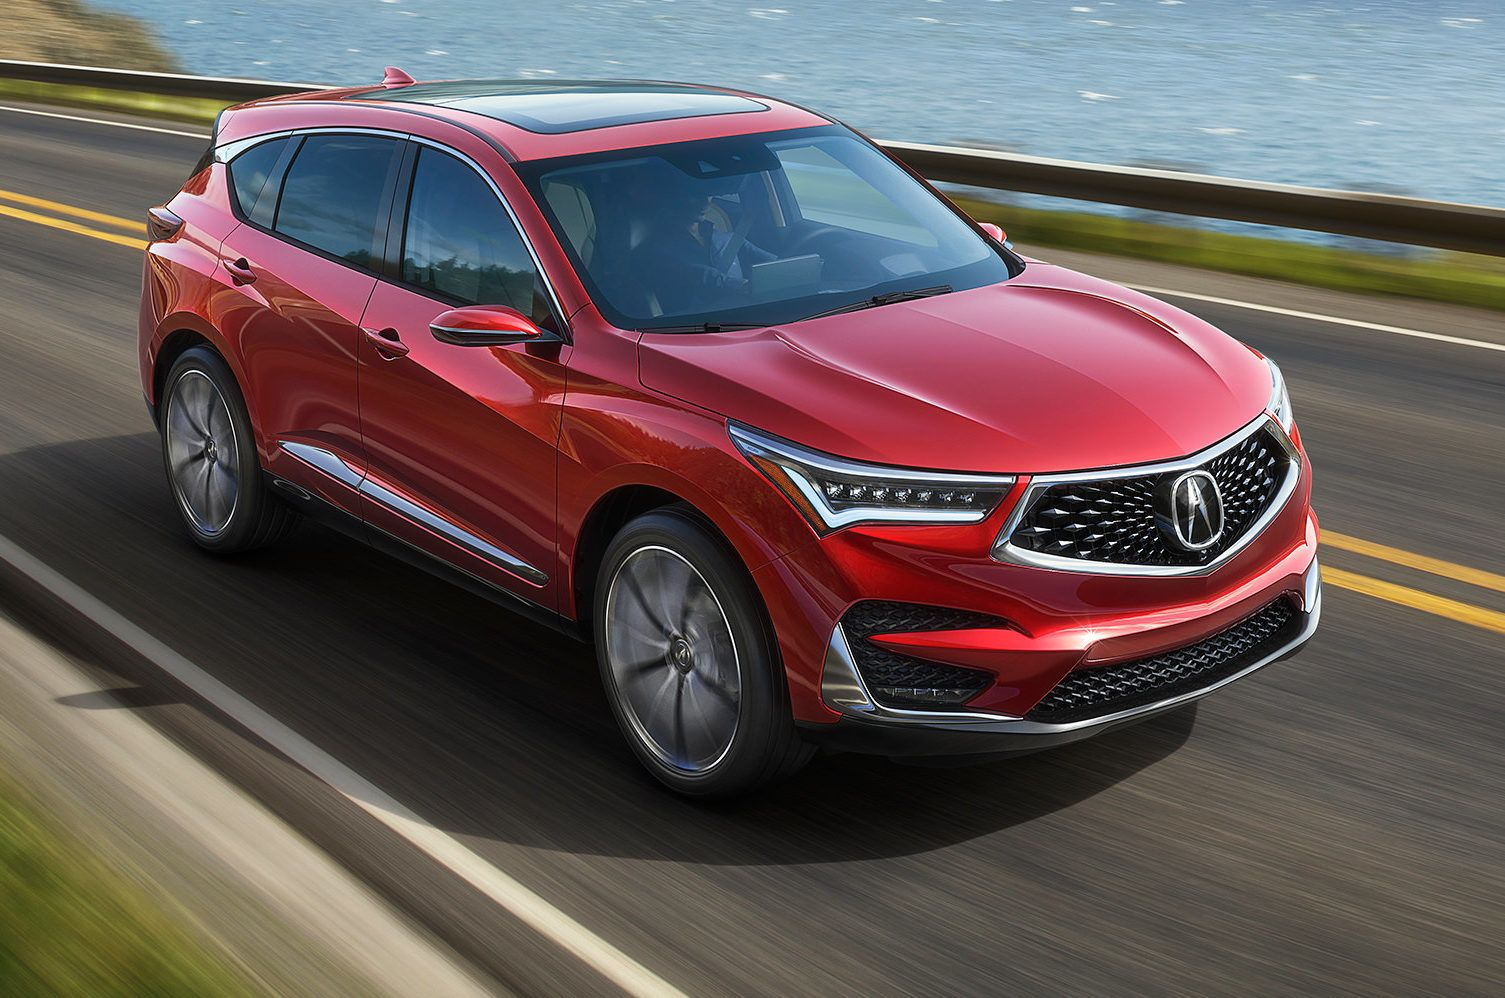 2019 Acura Rdx Prototype First Look Larger Stiffer More Powerful Acura Rdx Acura Acura Cars